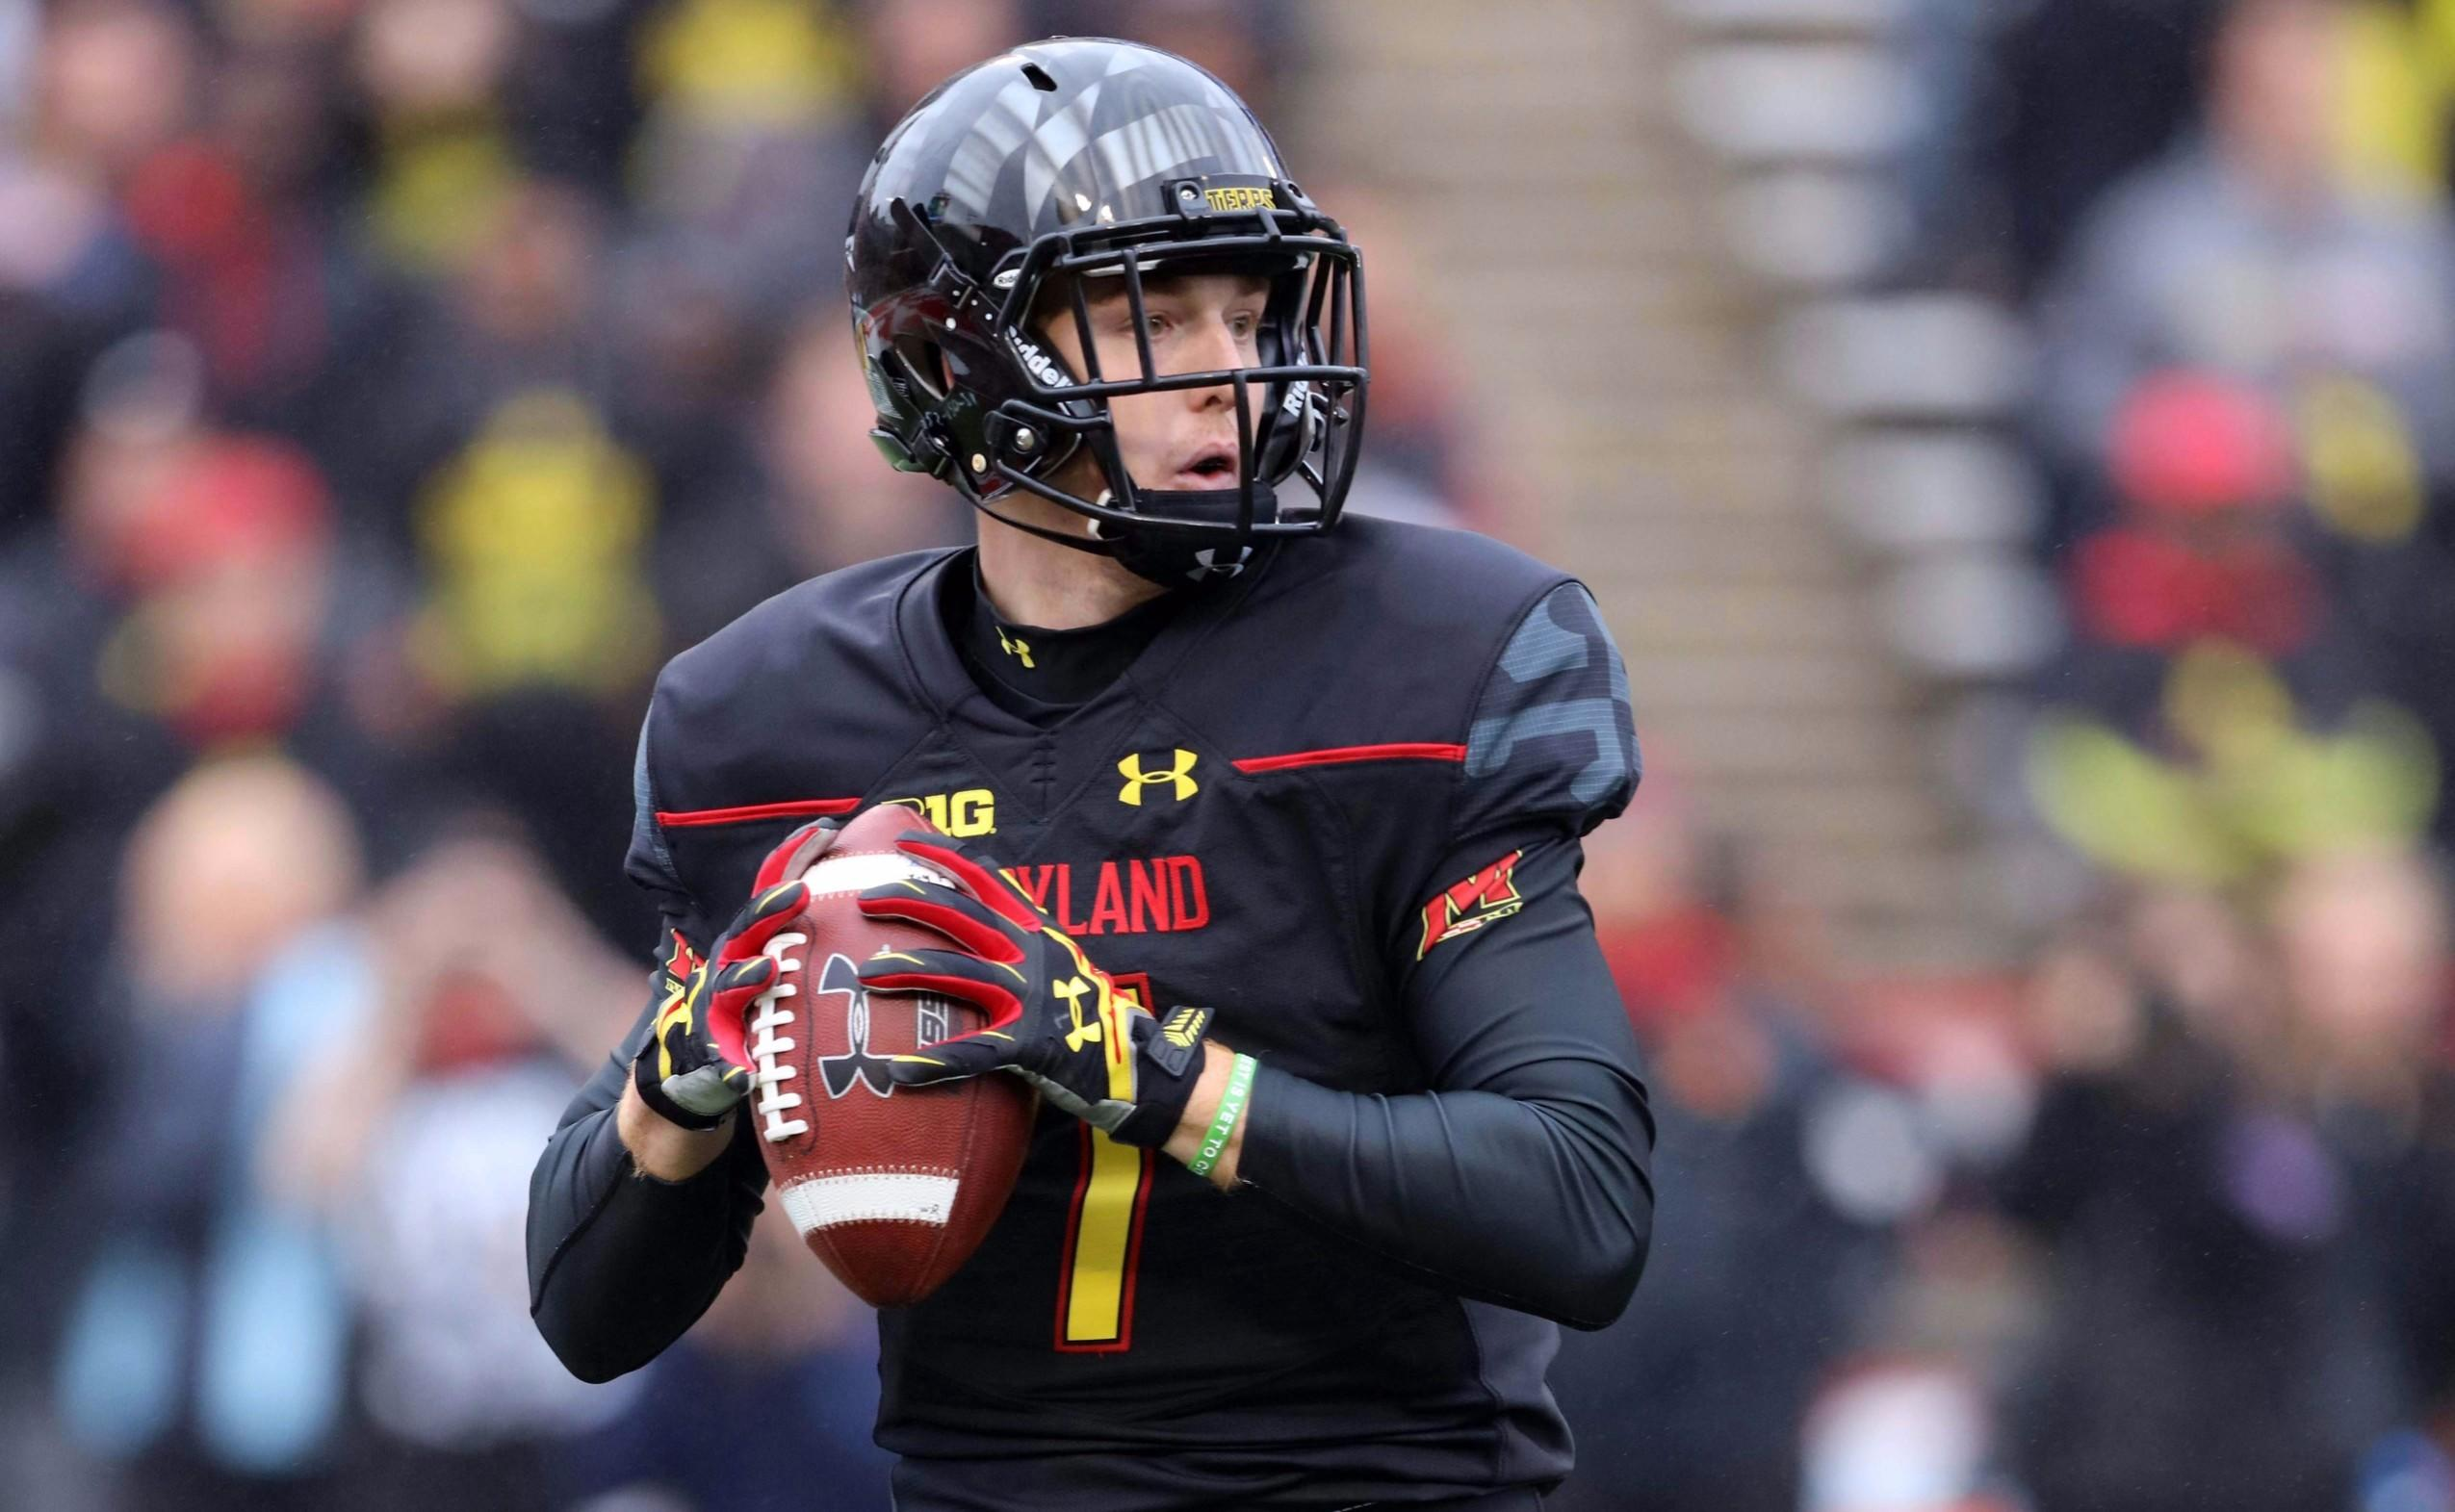 Maryland QB Rowe benched again mid-game vs. Michigan